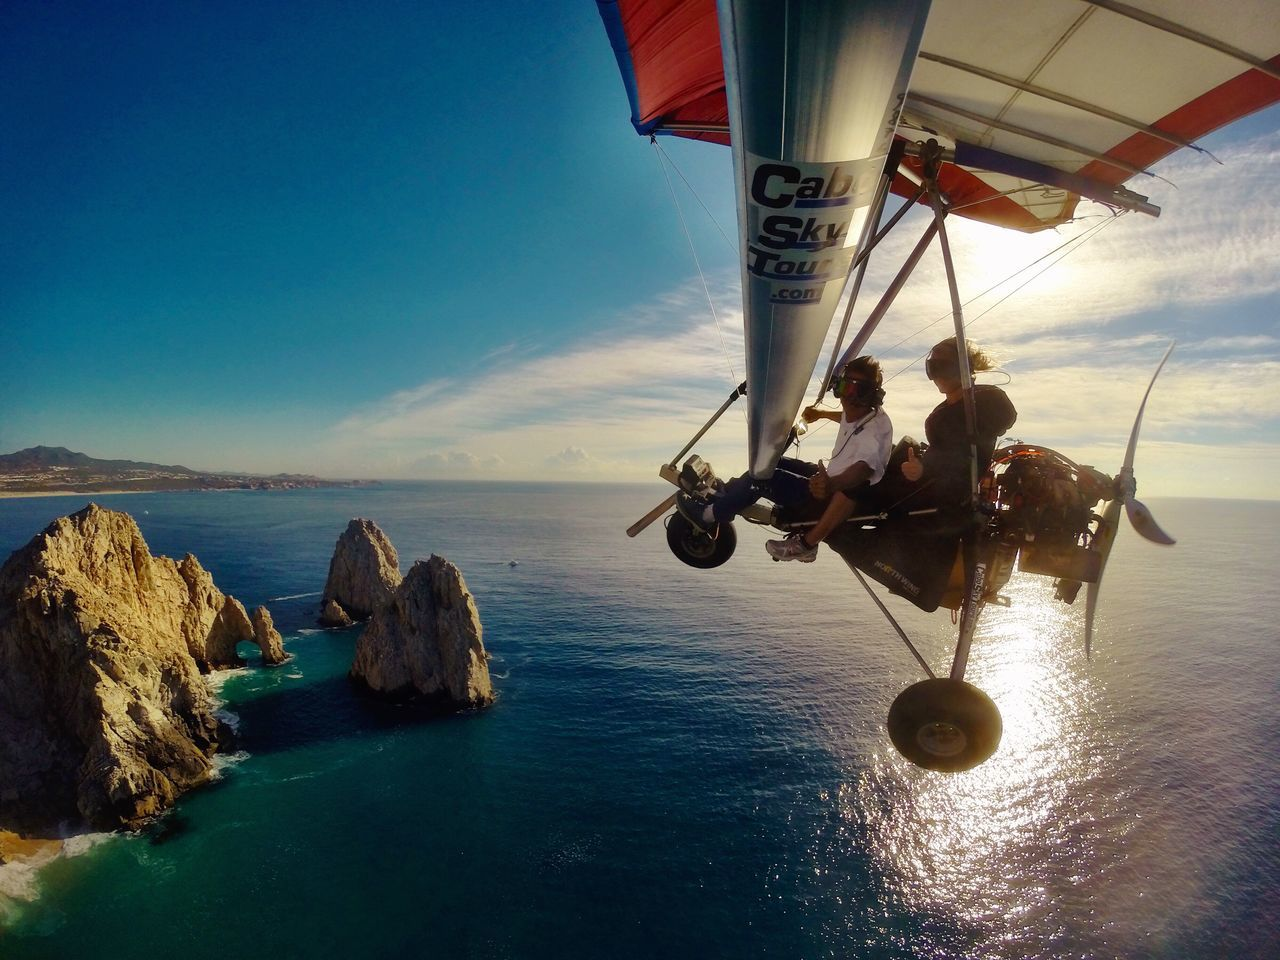 LandsEnd Sea Real People Water Horizon Over Water Transportation Nature Adventure Scenics Vacations Extreme Sports Mexico Bajacalifornia Travel Adrenaline Adrenaline Junkie Fly Away Skydiving LosCabos Determination Togetherness Fly